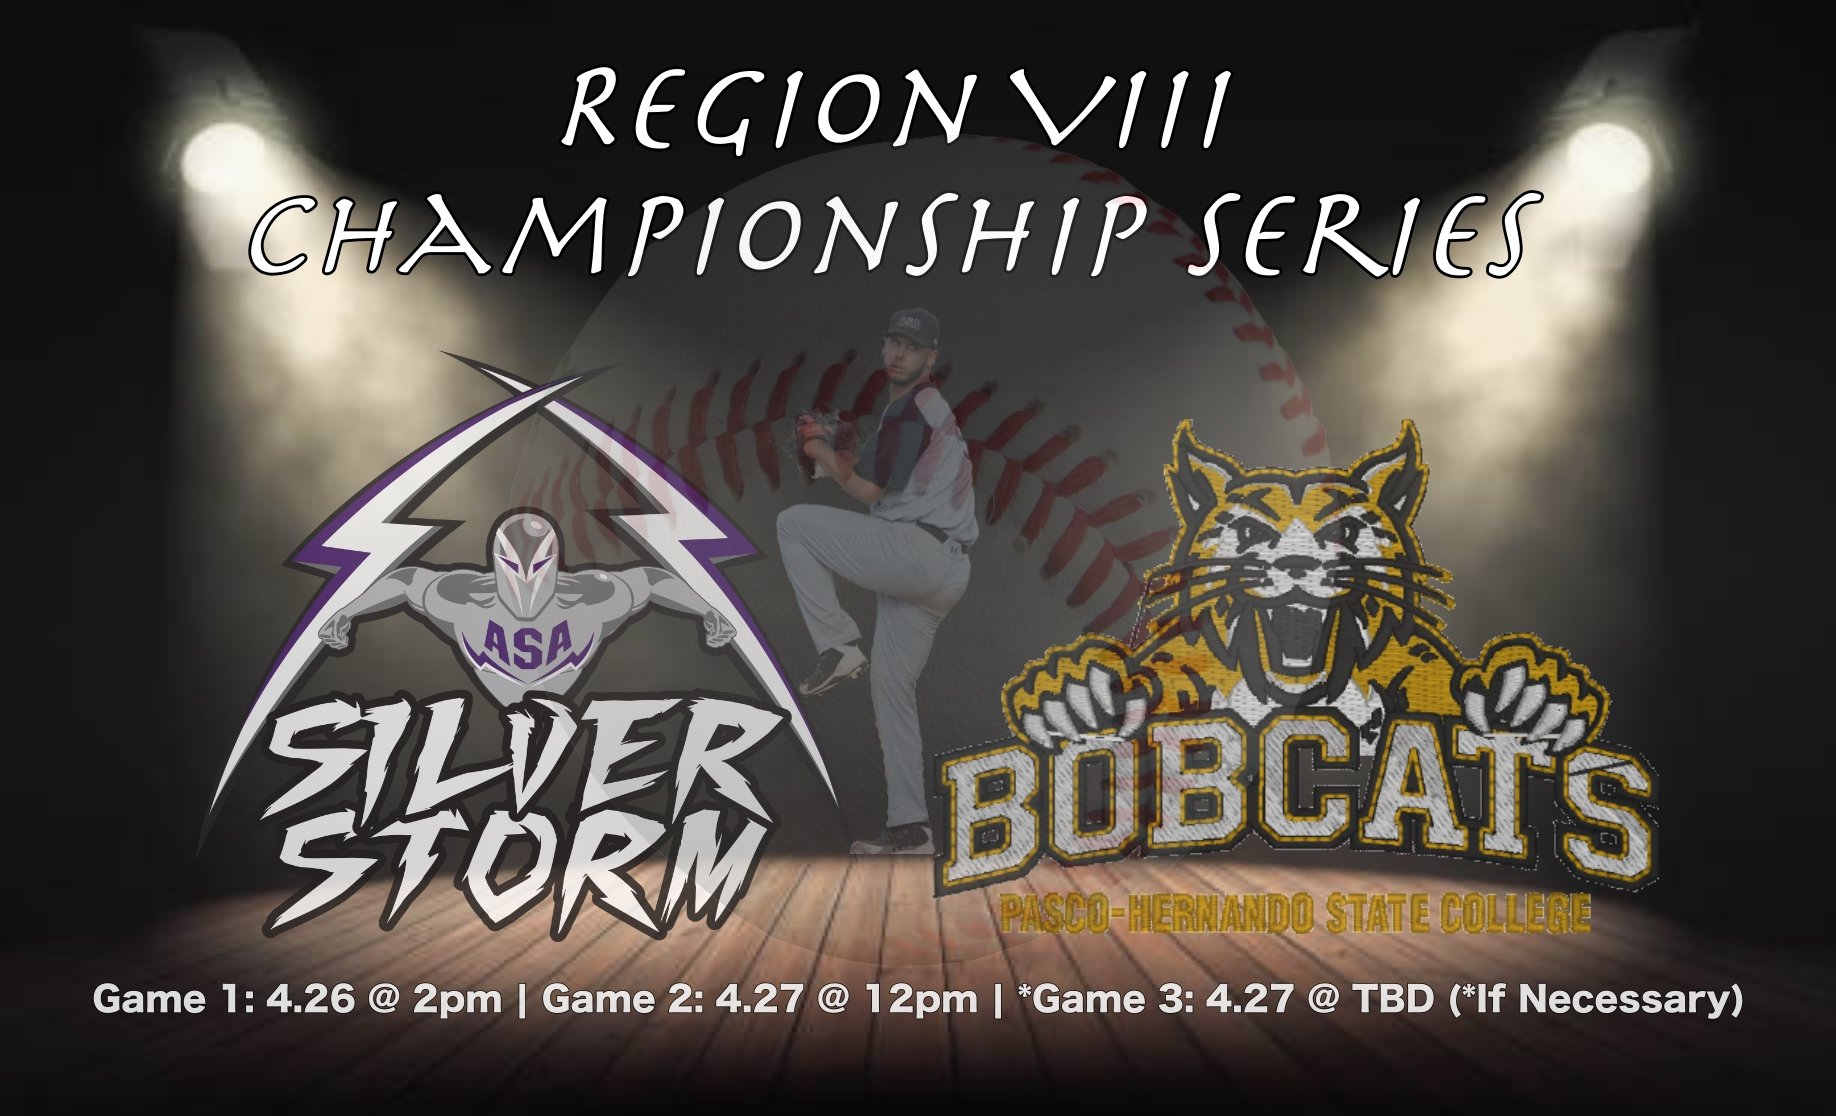 ASA Miami Preparing For Region VIII Weekend Championship Series